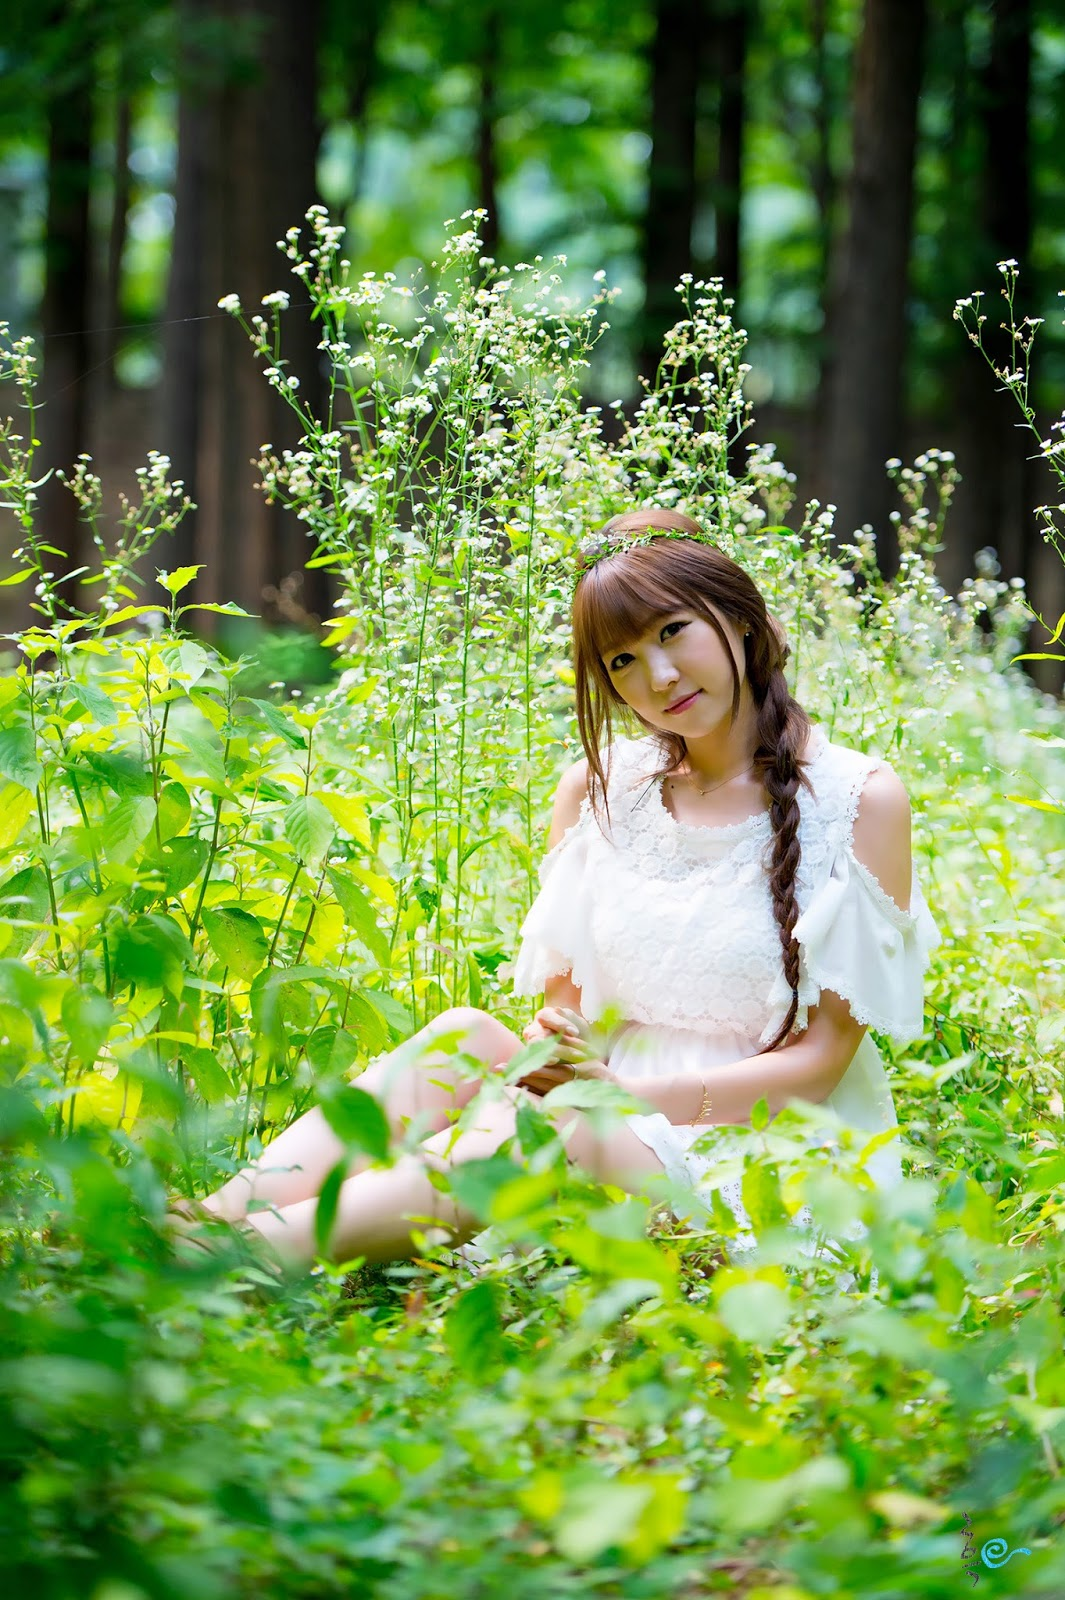 5 Lovely Lee Eun Hye In Outdoor Photo Shoot - very cute asian girl-girlcute4u.blogspot.com